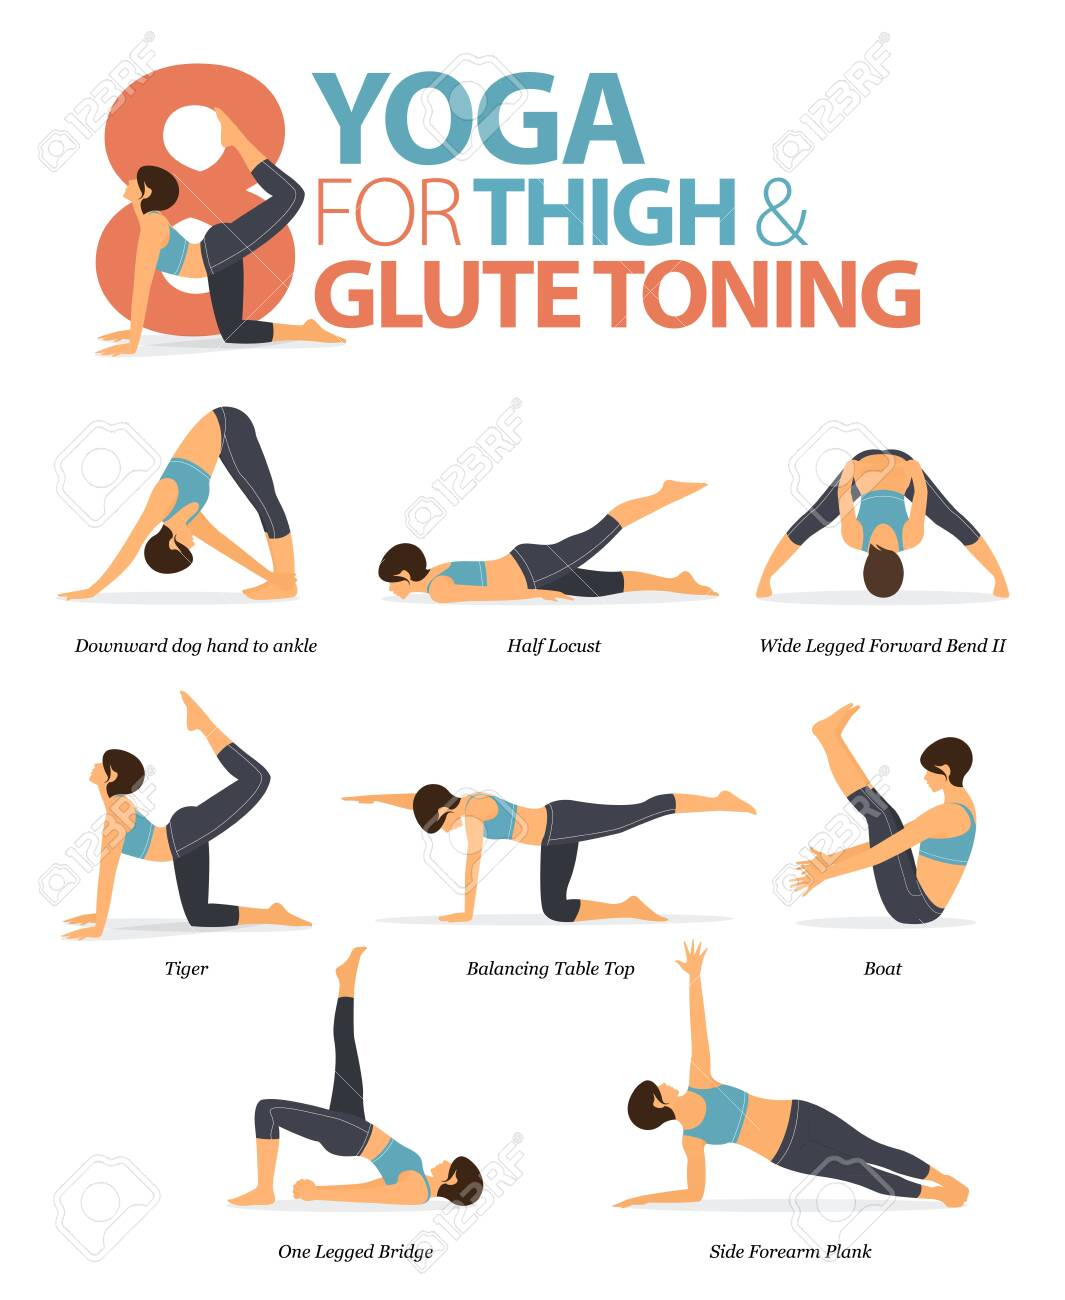 50 Yoga Poses Or Asana Posture For Workout In Thigh & Glute Toning ...